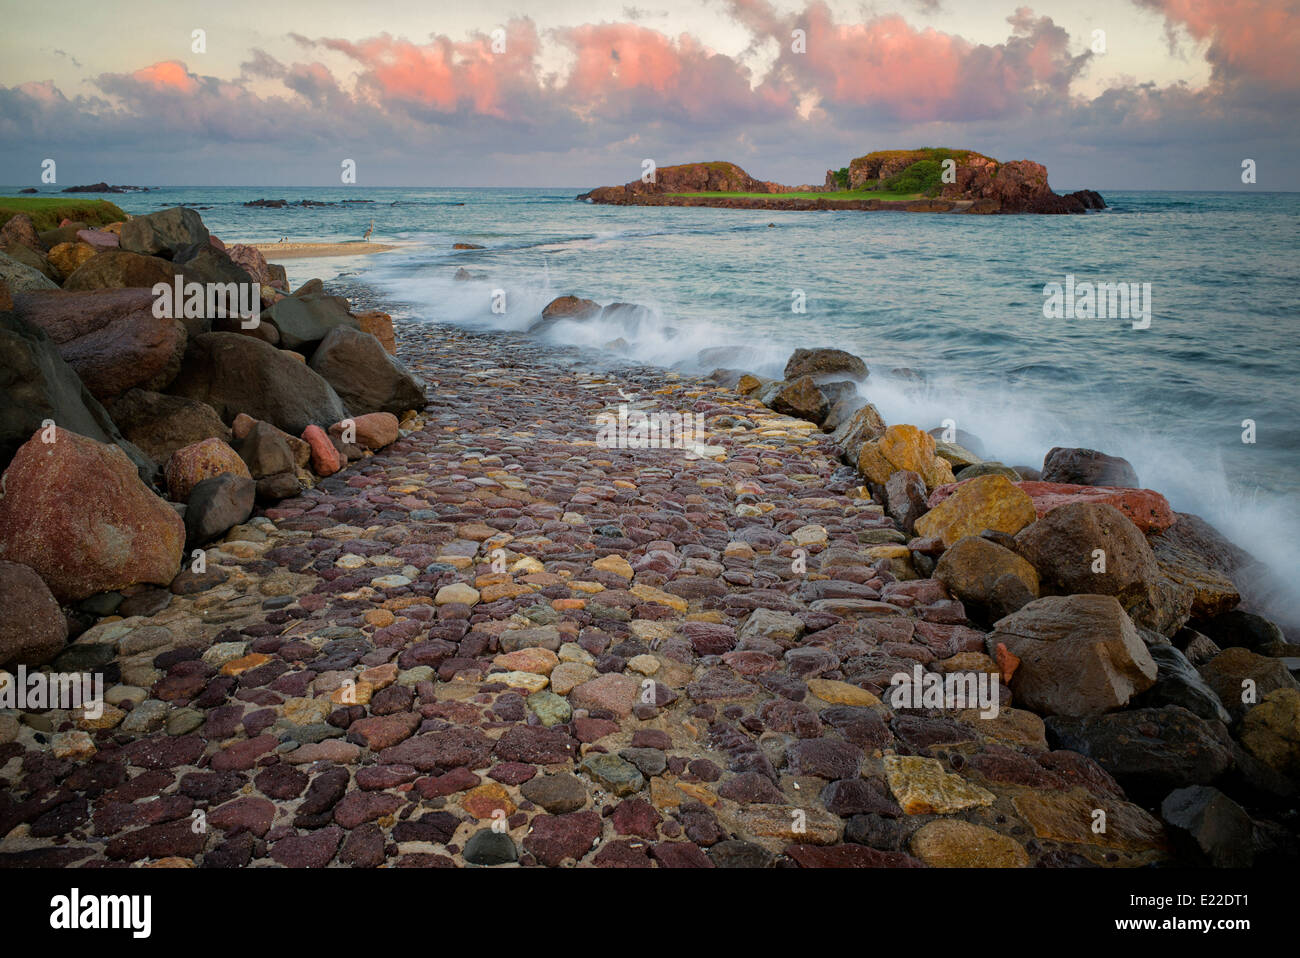 Rock road path leading to golf green at Punta Mita Golf Course, Mexico. - Stock Image